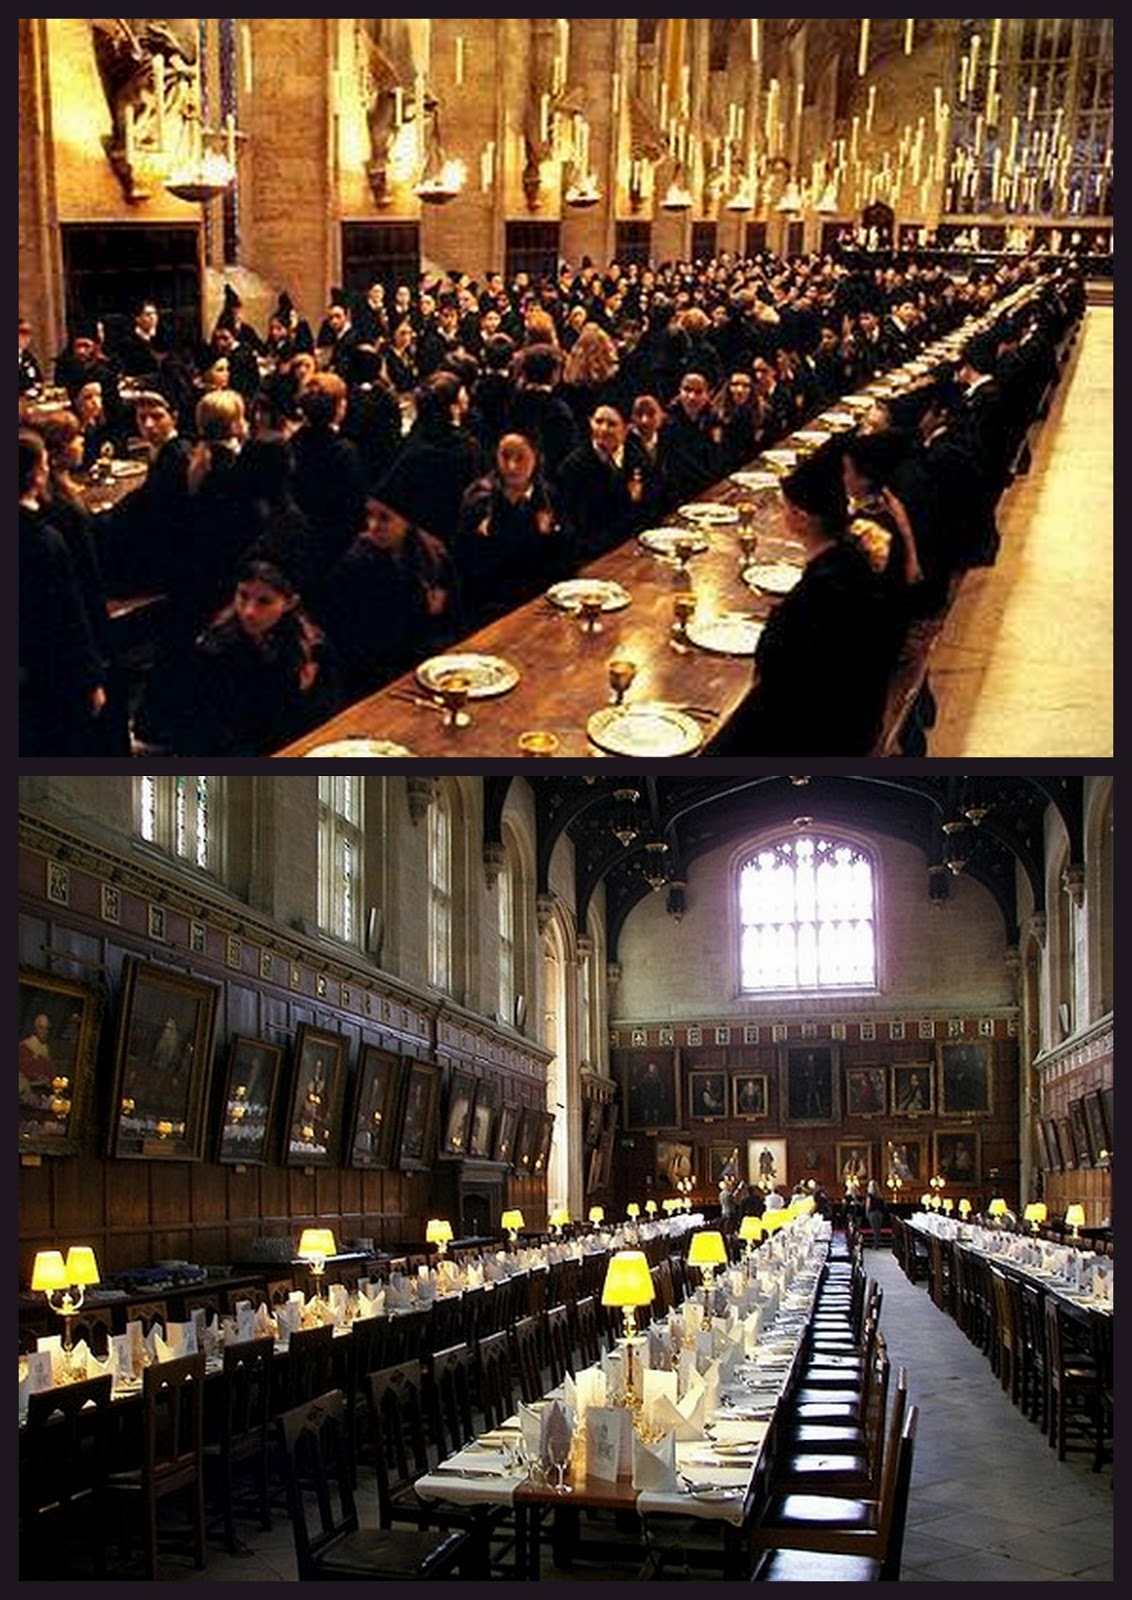 La claqueta de ale for Comedor harry potter